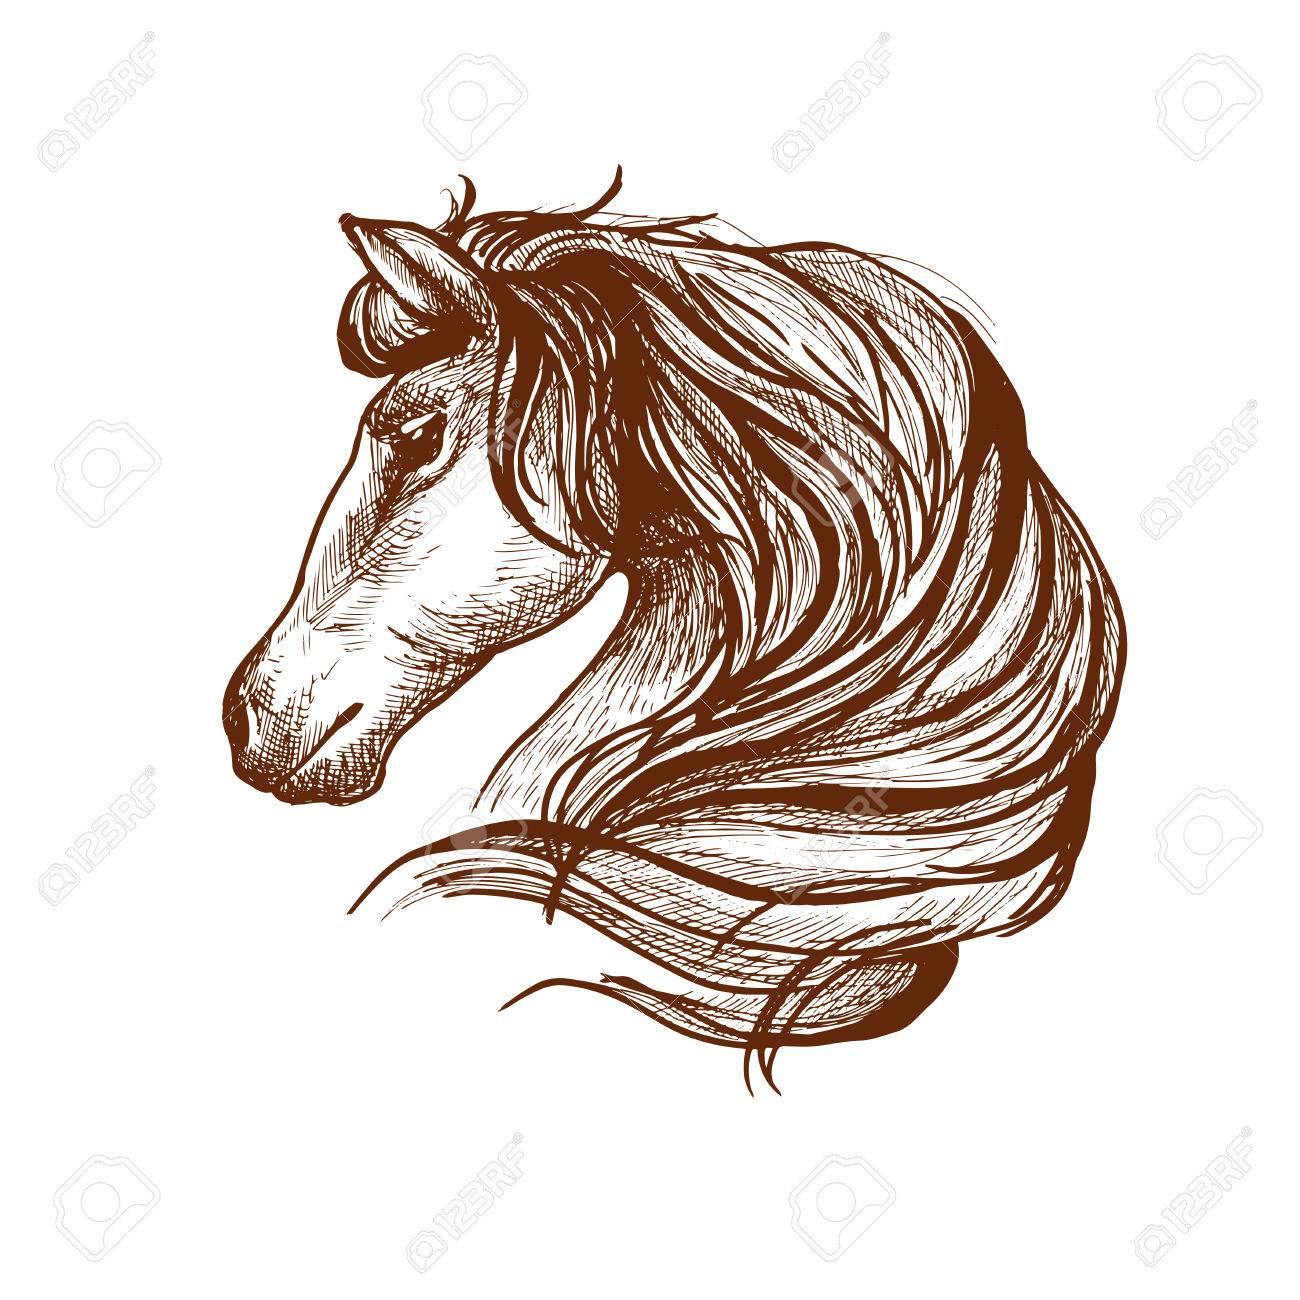 1300x1300 Graceful Horse Engraving Sketch Icon With Profile Of Purebred